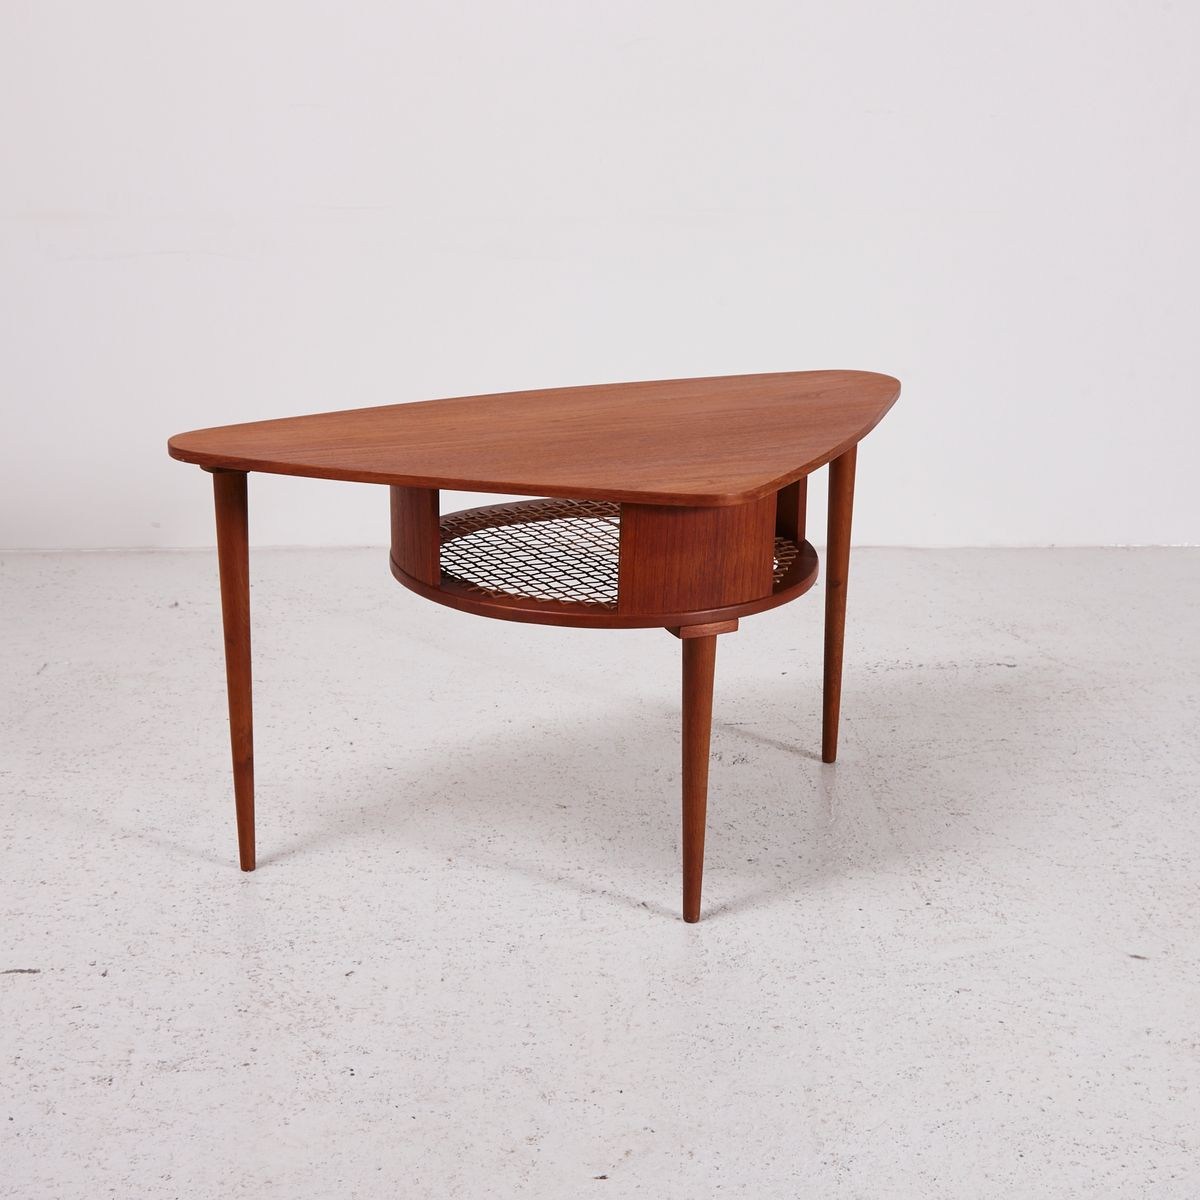 Vintage Triangular Teak Coffee Table with Shelf - Vintage Triangular Teak Coffee Table With Shelf For Sale At Pamono